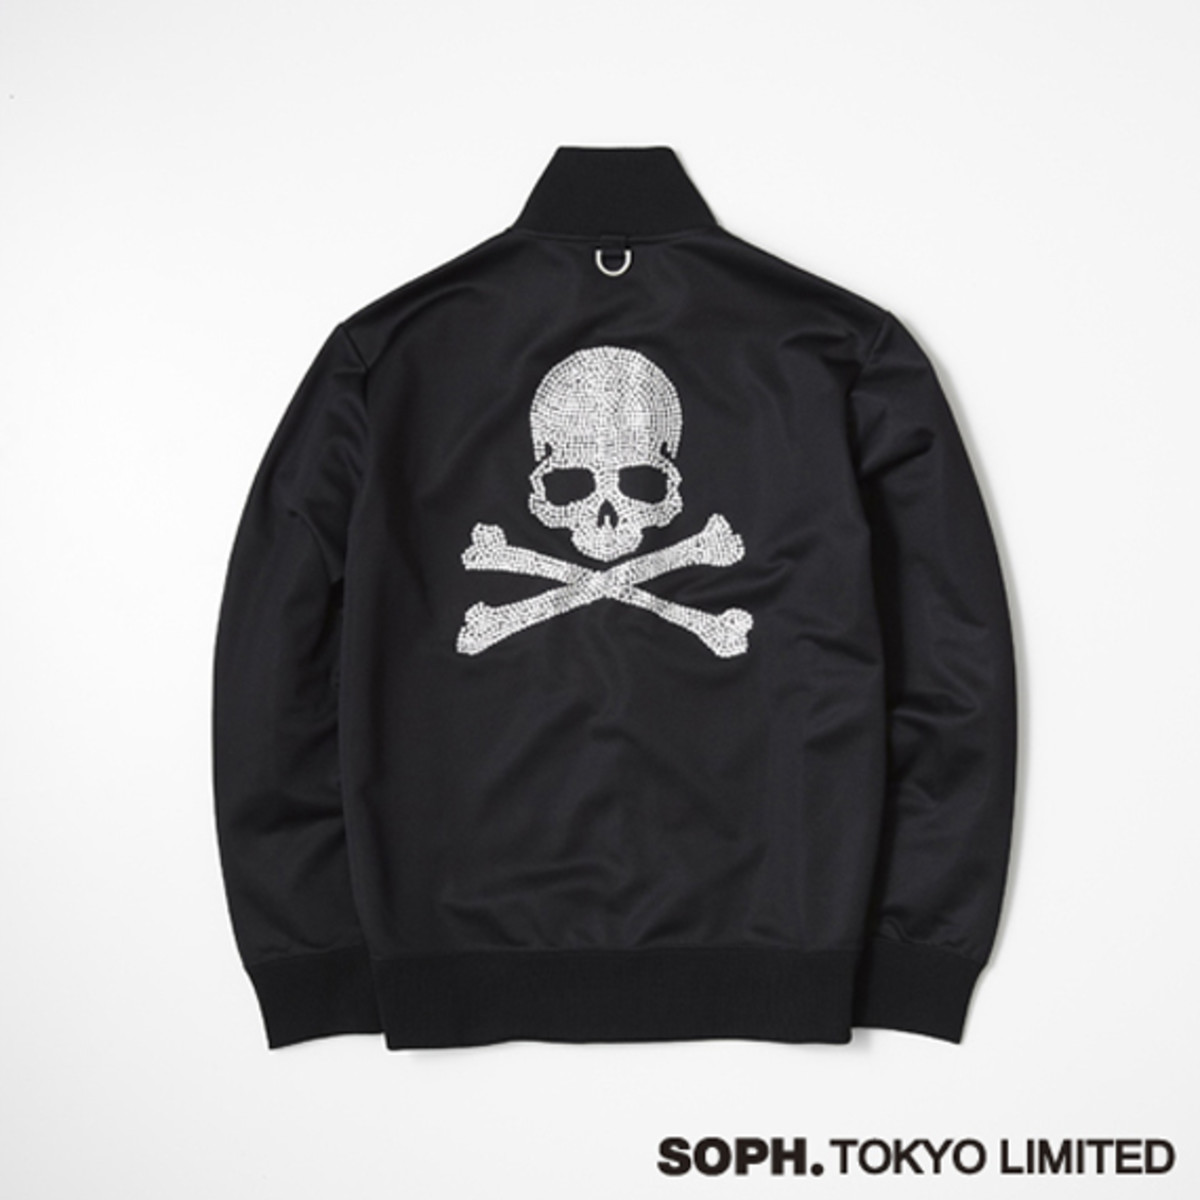 fcrb-mastermind-japan-soph-tokyo-13th-anniversary-collection-02